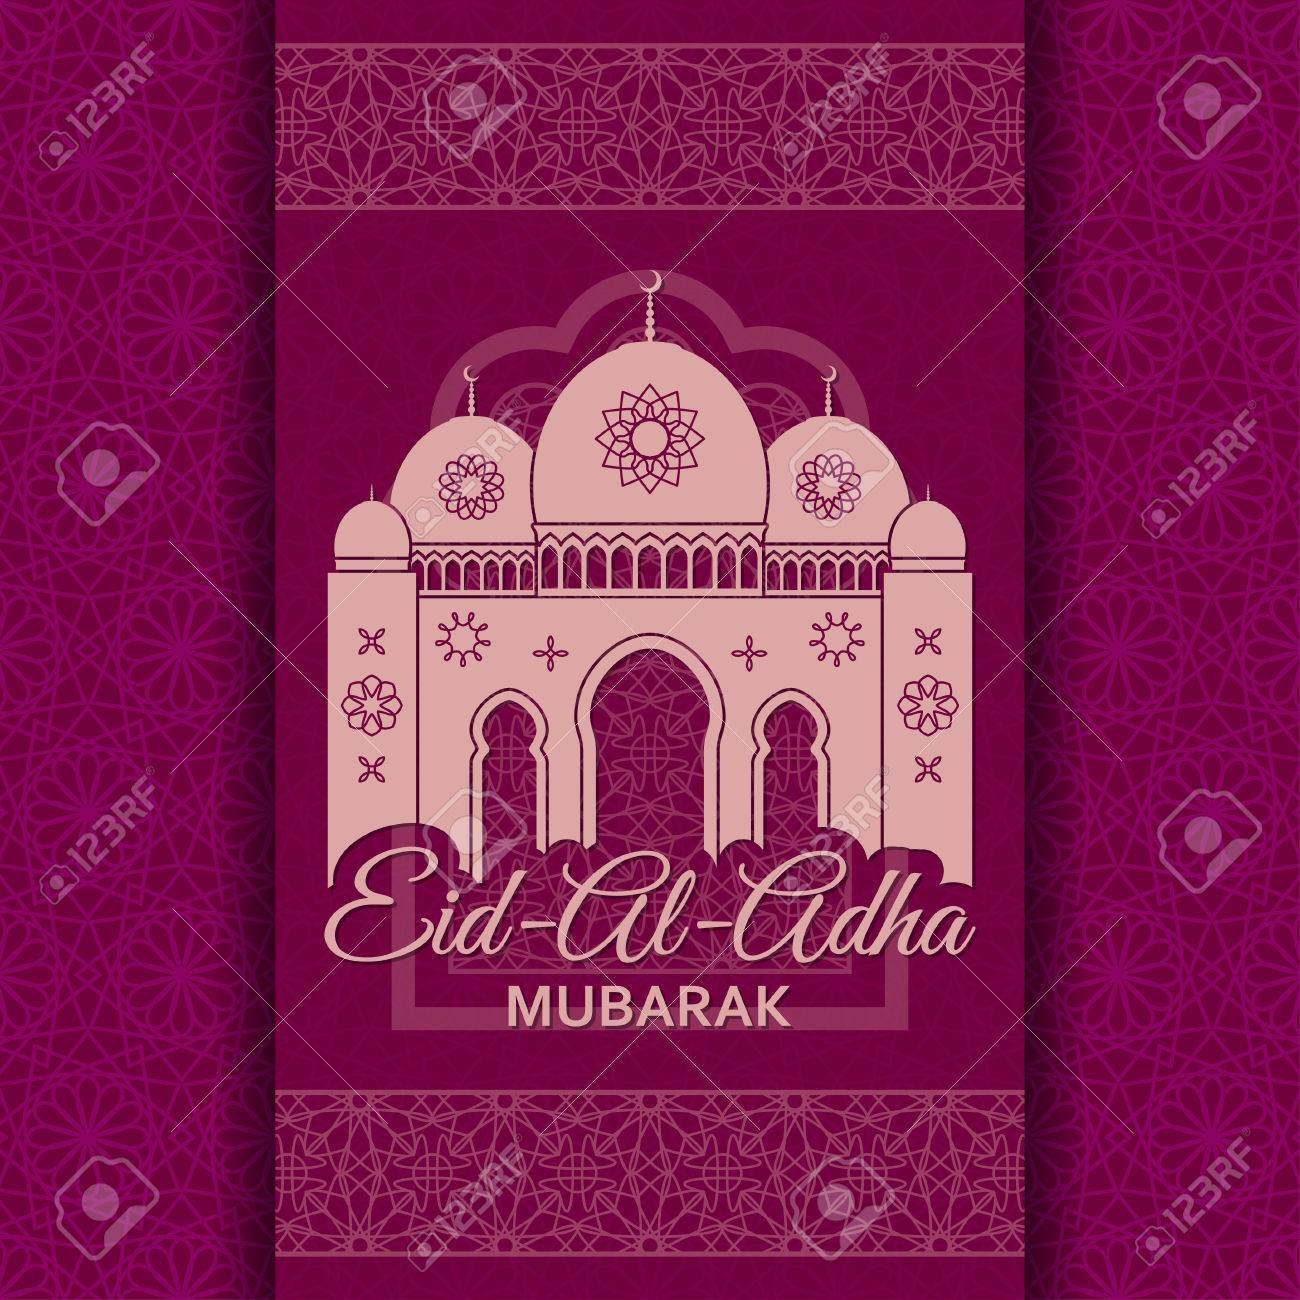 Eid al adha background mosque and islamic arabic window greeting eid al adha background mosque and islamic arabic window greeting card vector illustration kristyandbryce Images